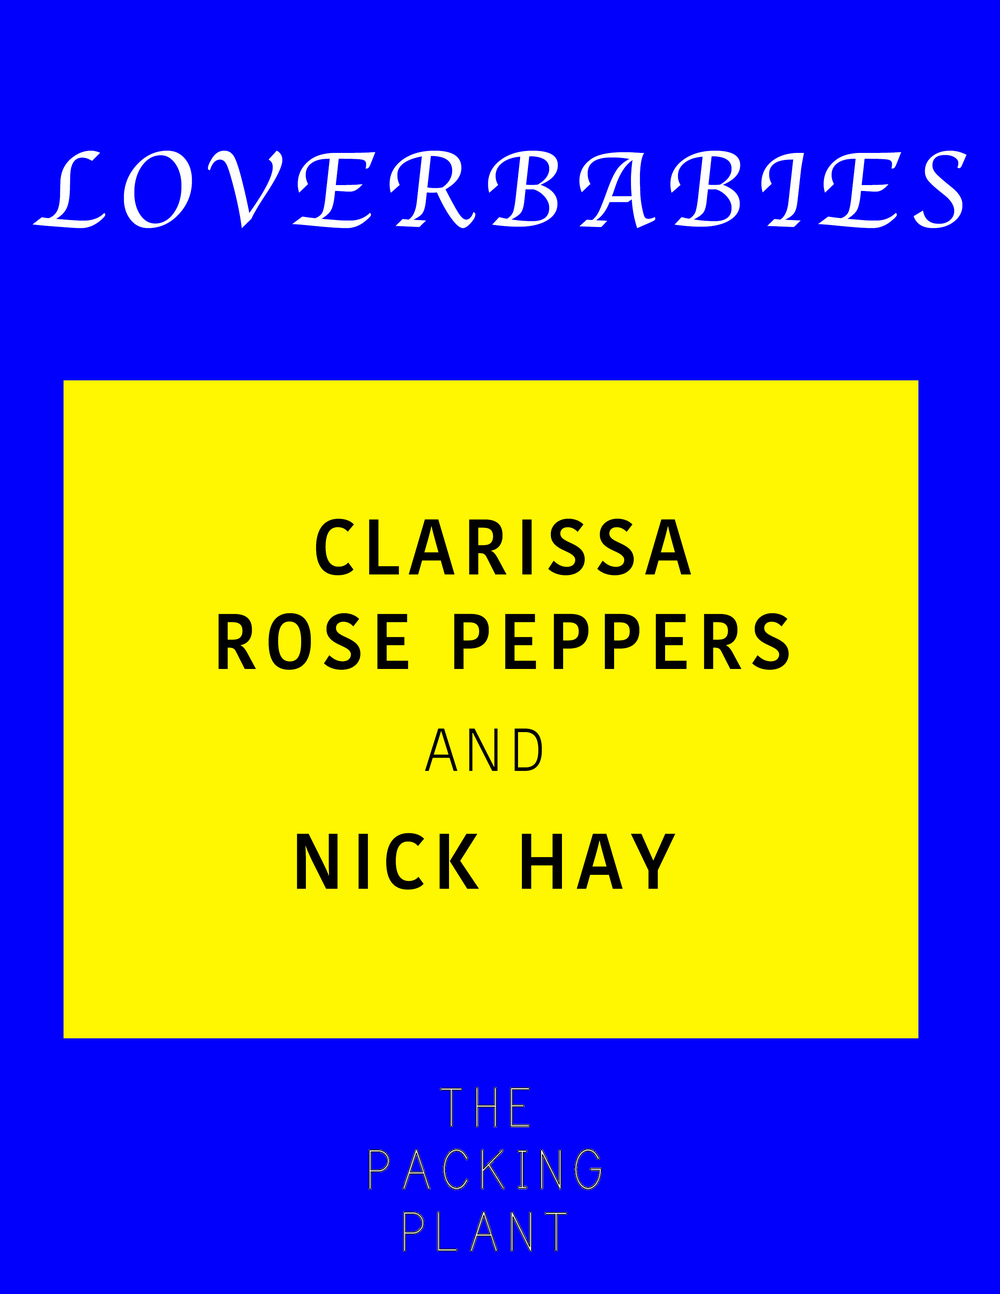 LOVERBABIES   Clarissa Rose Peppers & Nick Hay  April 2015